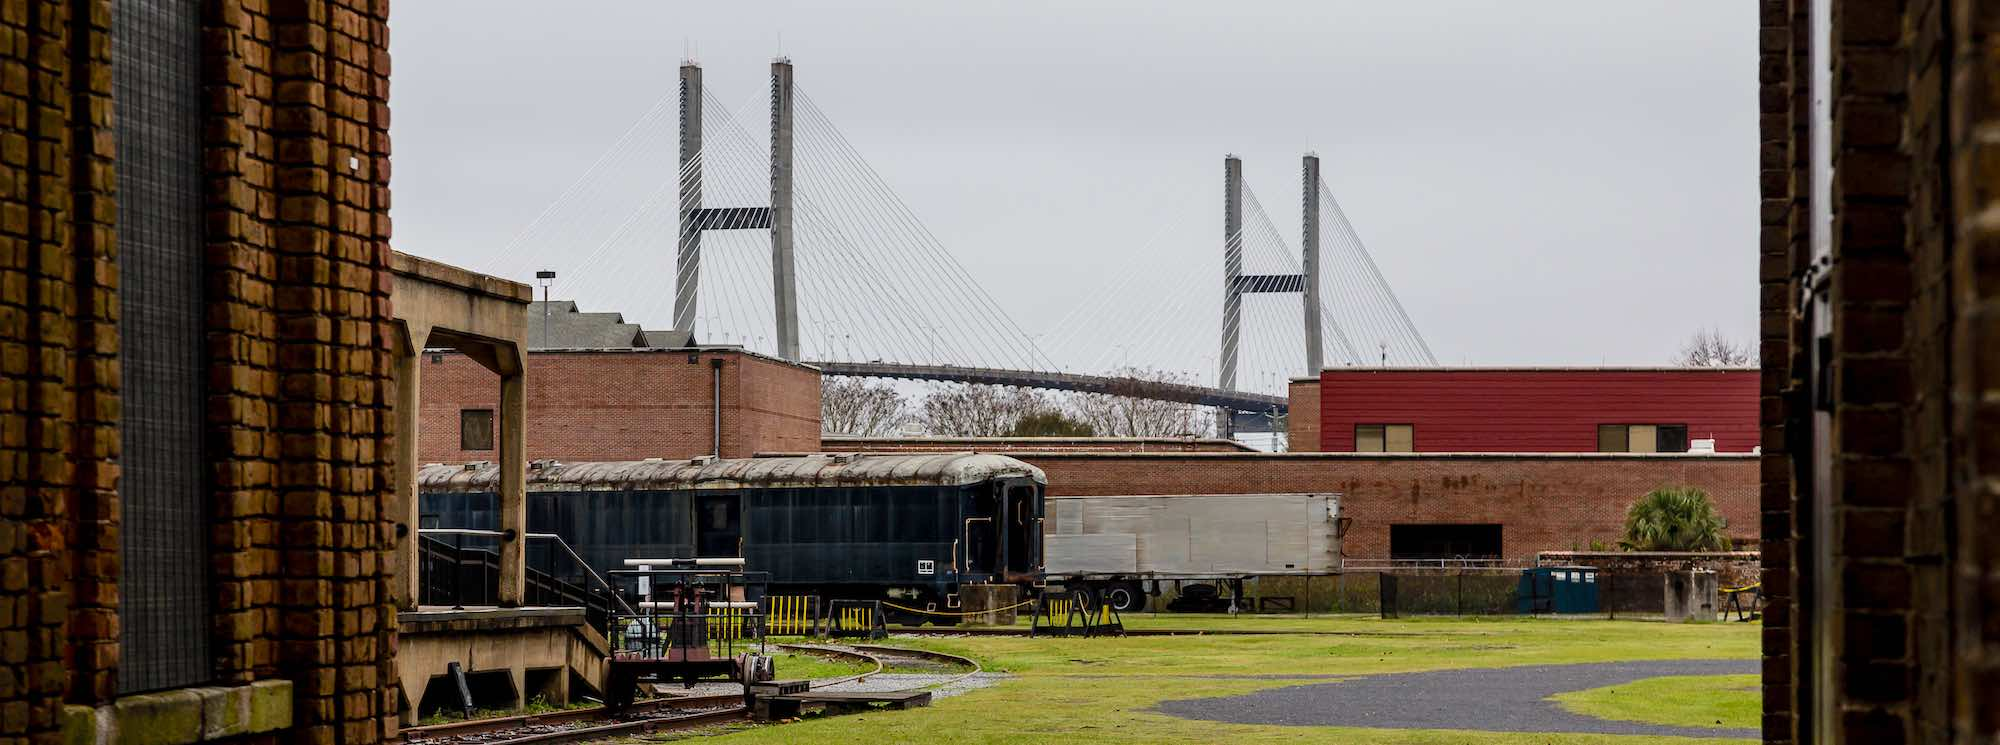 Rail carriage in front of the Talmadge Bridge